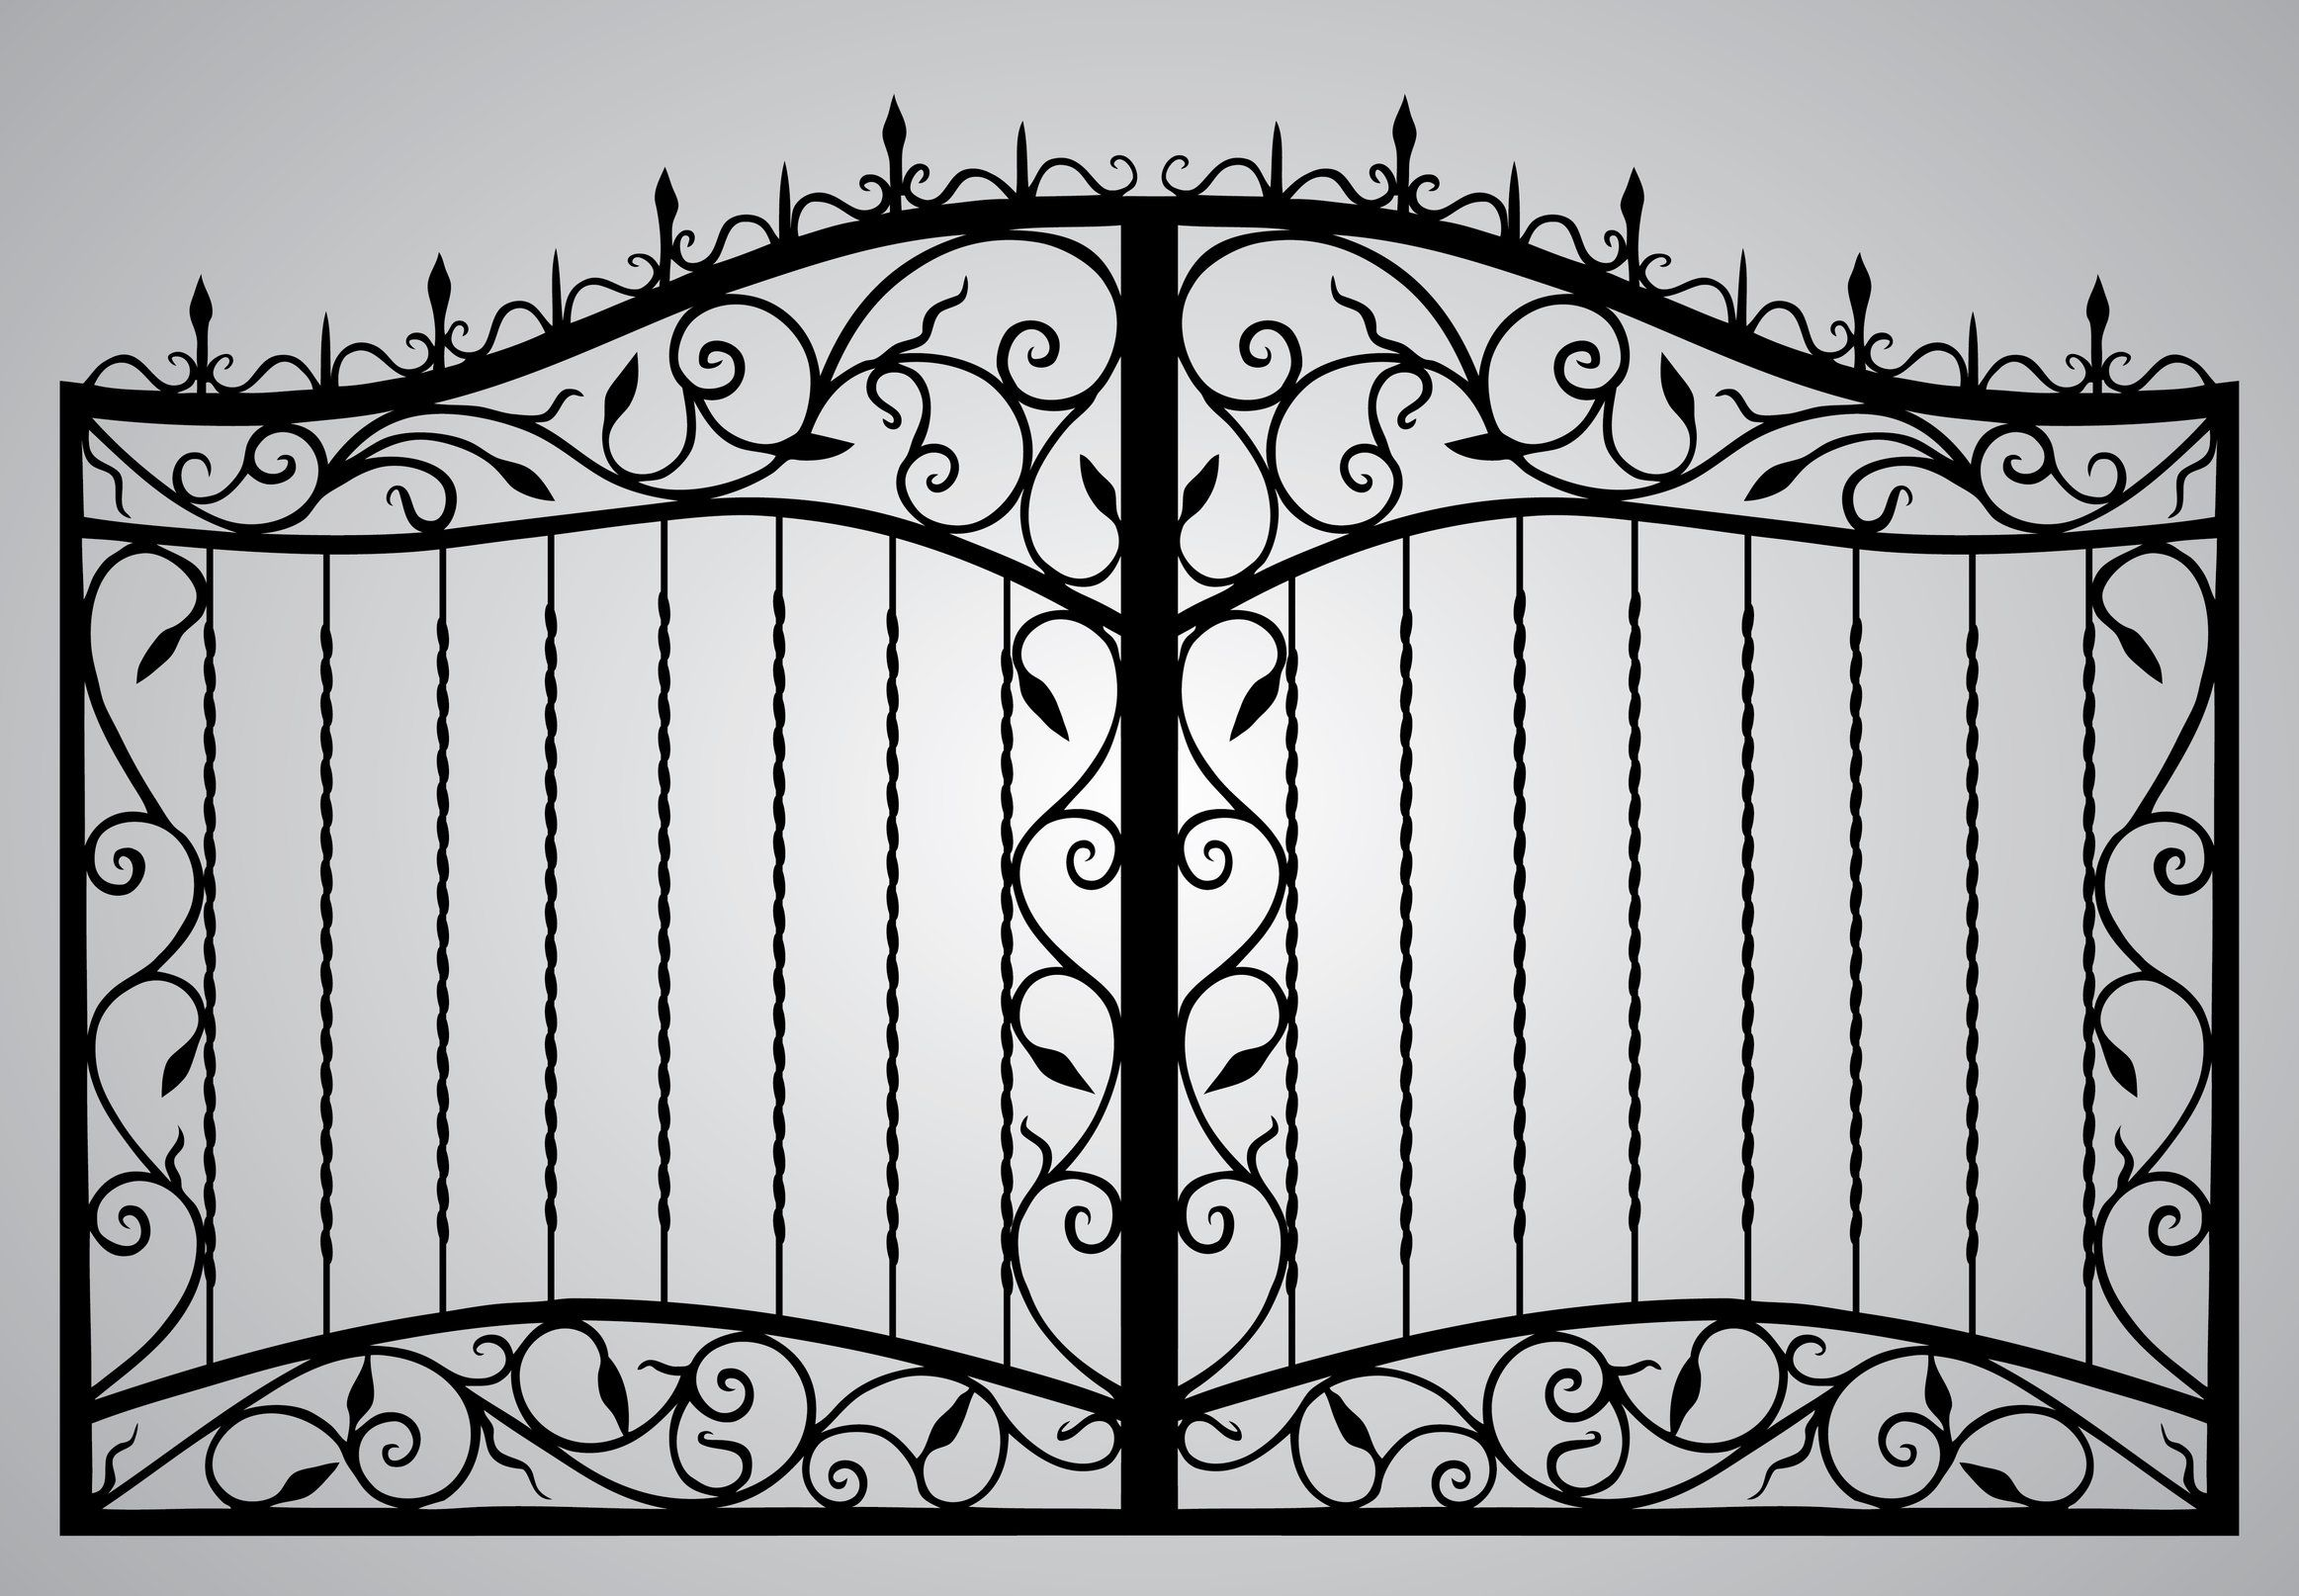 Enchanting Rod Iron Fence With Chic Ornament For Outdoor Design Interesting Rod Iron Fence Design And Gate For Fron Wrought Iron Gates Fence Design Iron Gates